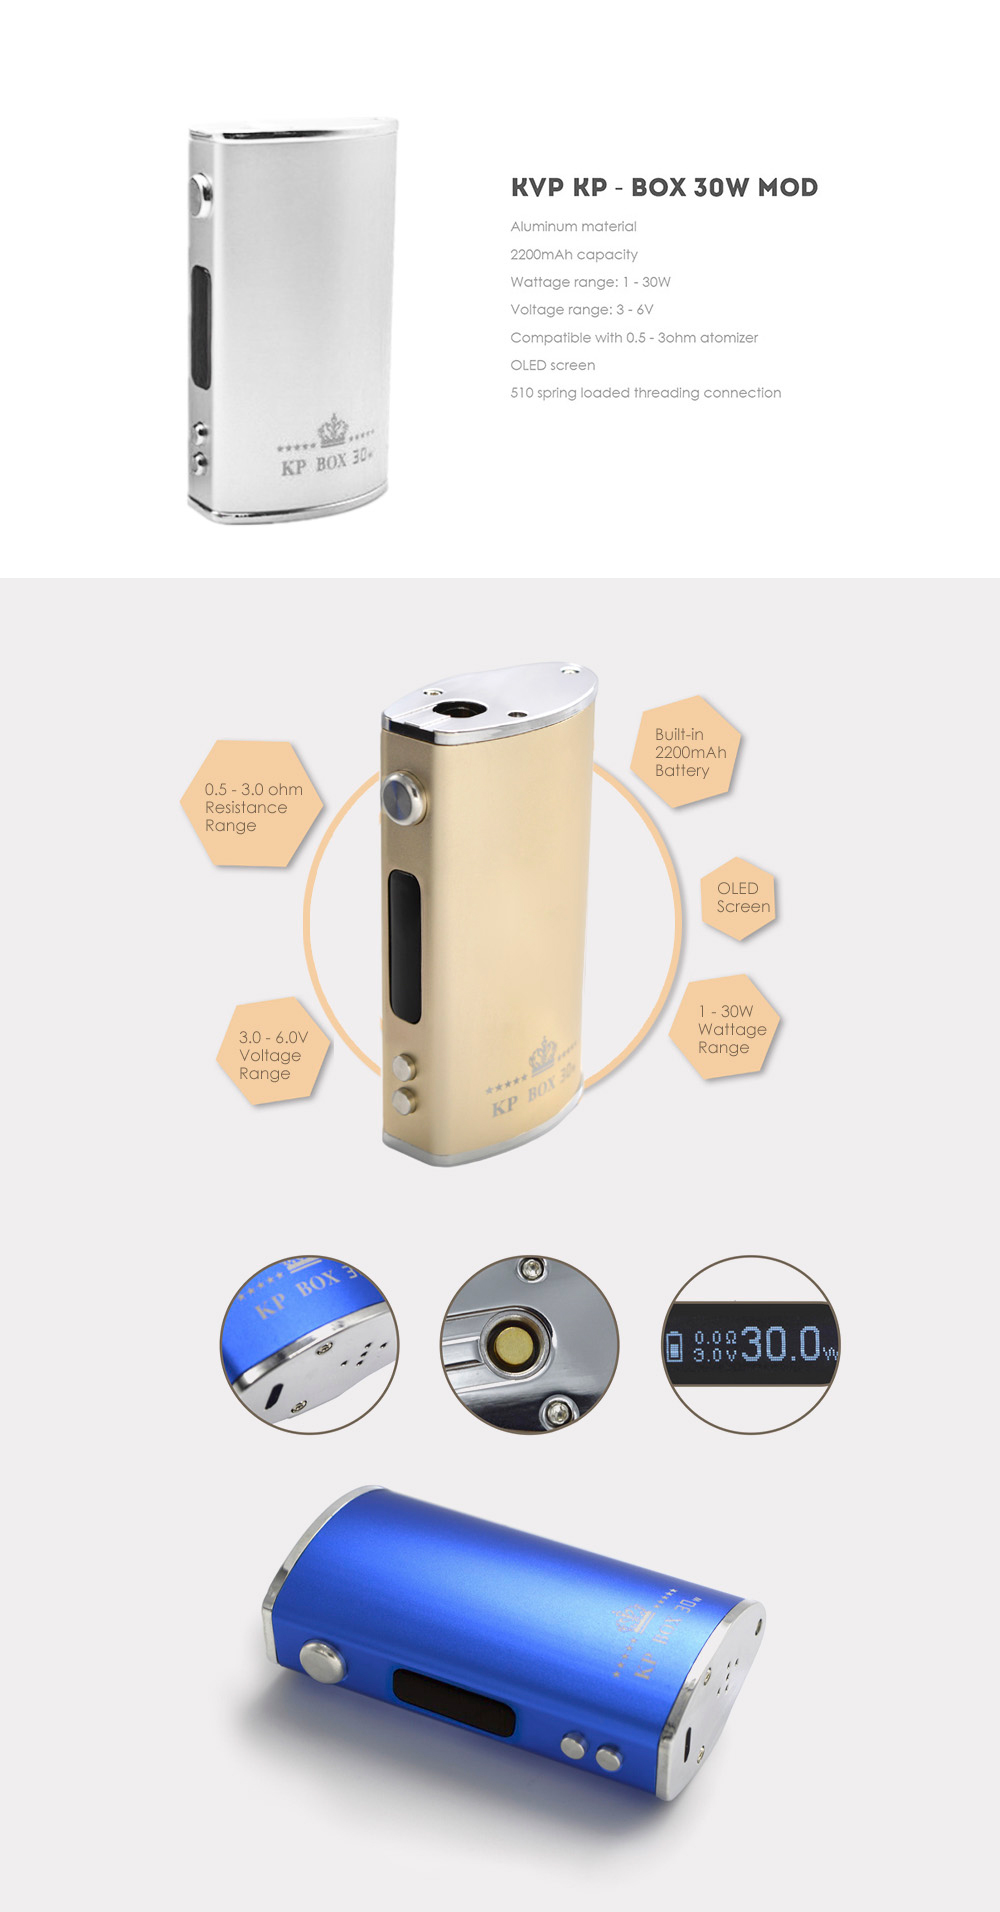 Original KVP KP - BOX Mod with 1 - 30W / 2200mAh / 3 - 6V for E Cigarette